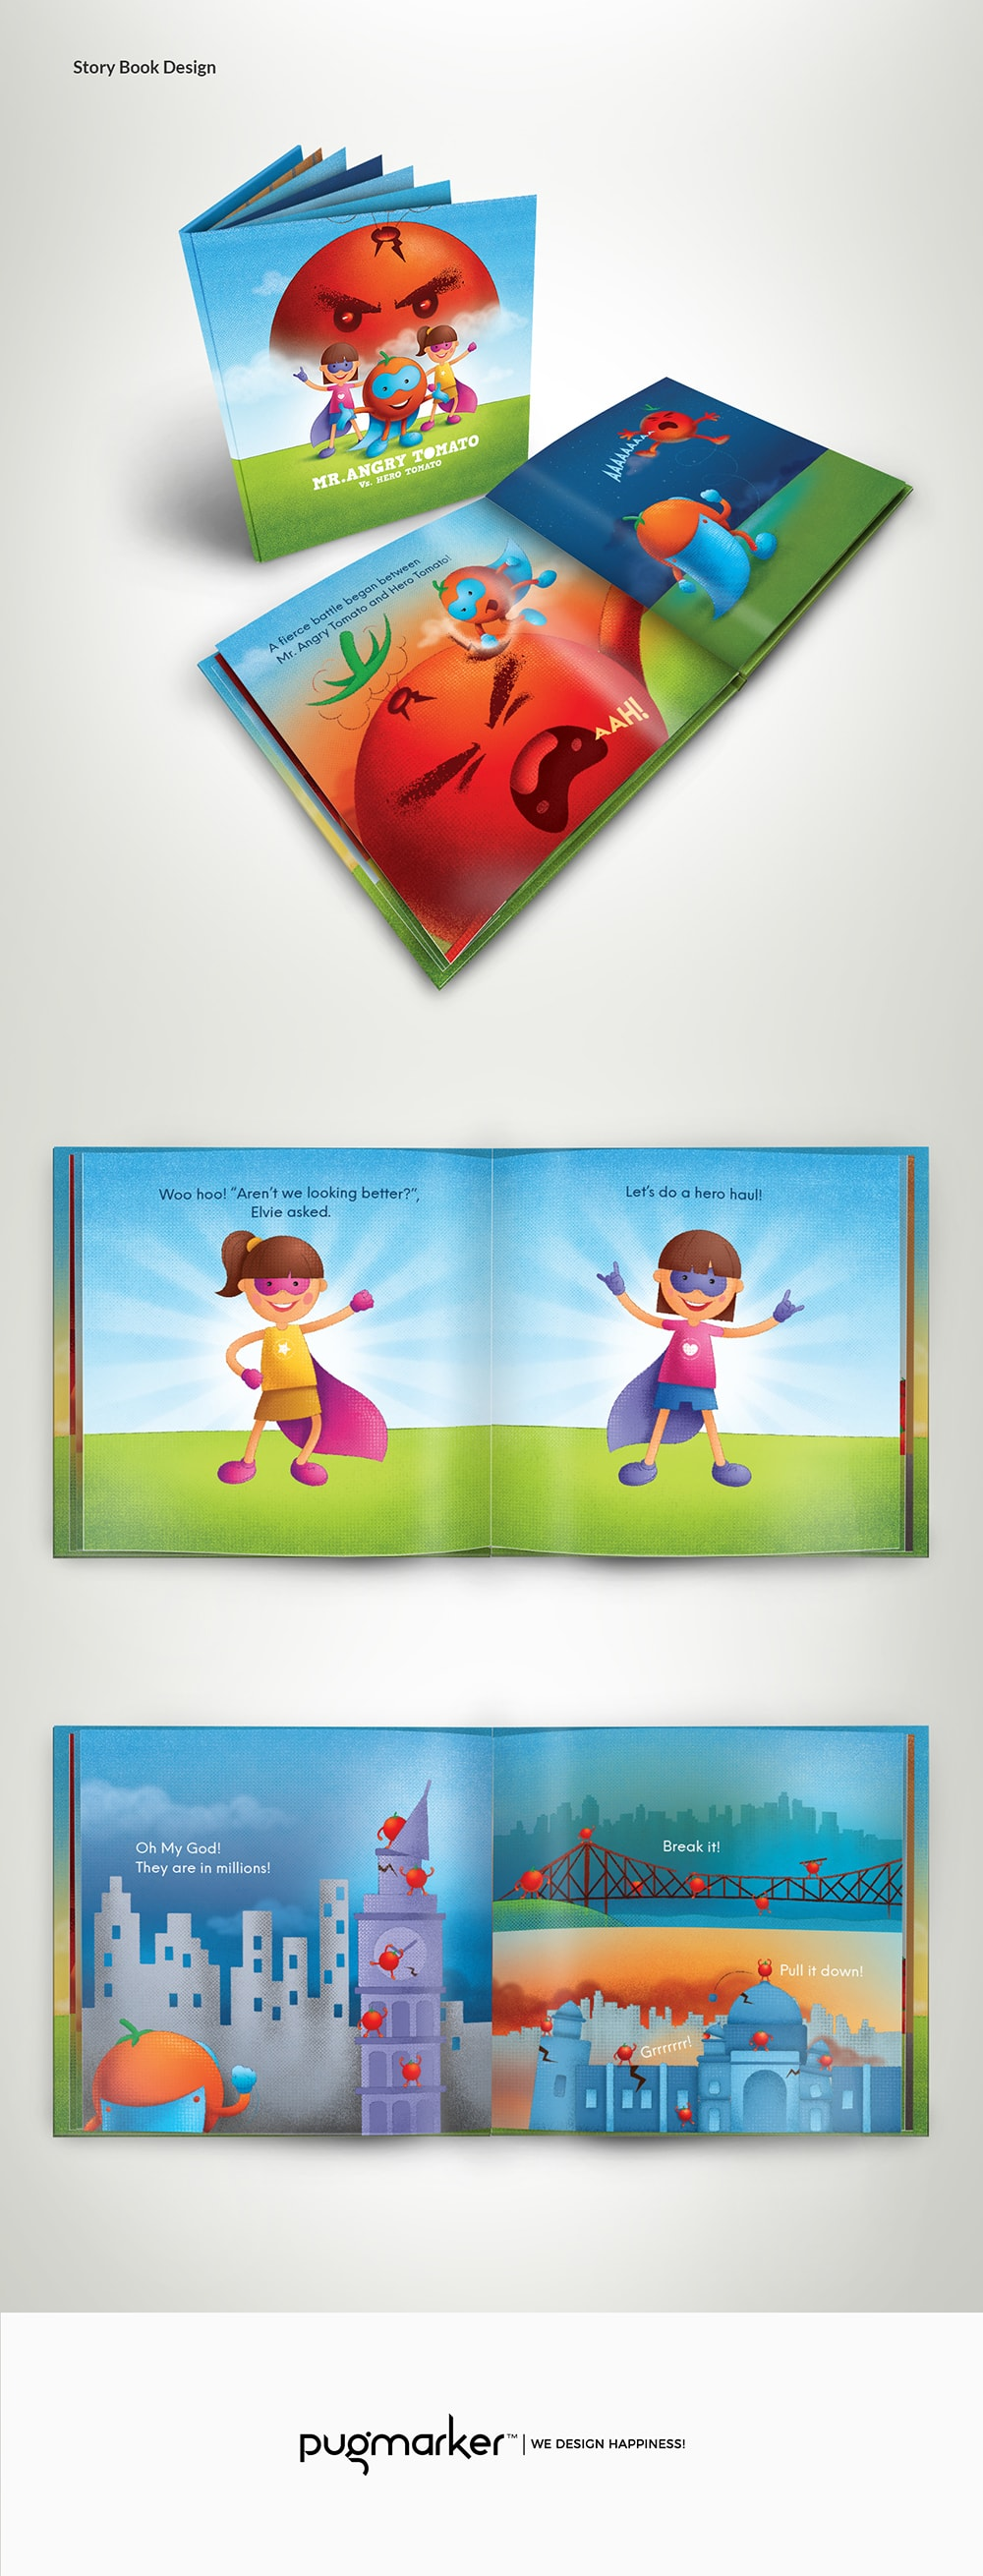 angry tomato story book